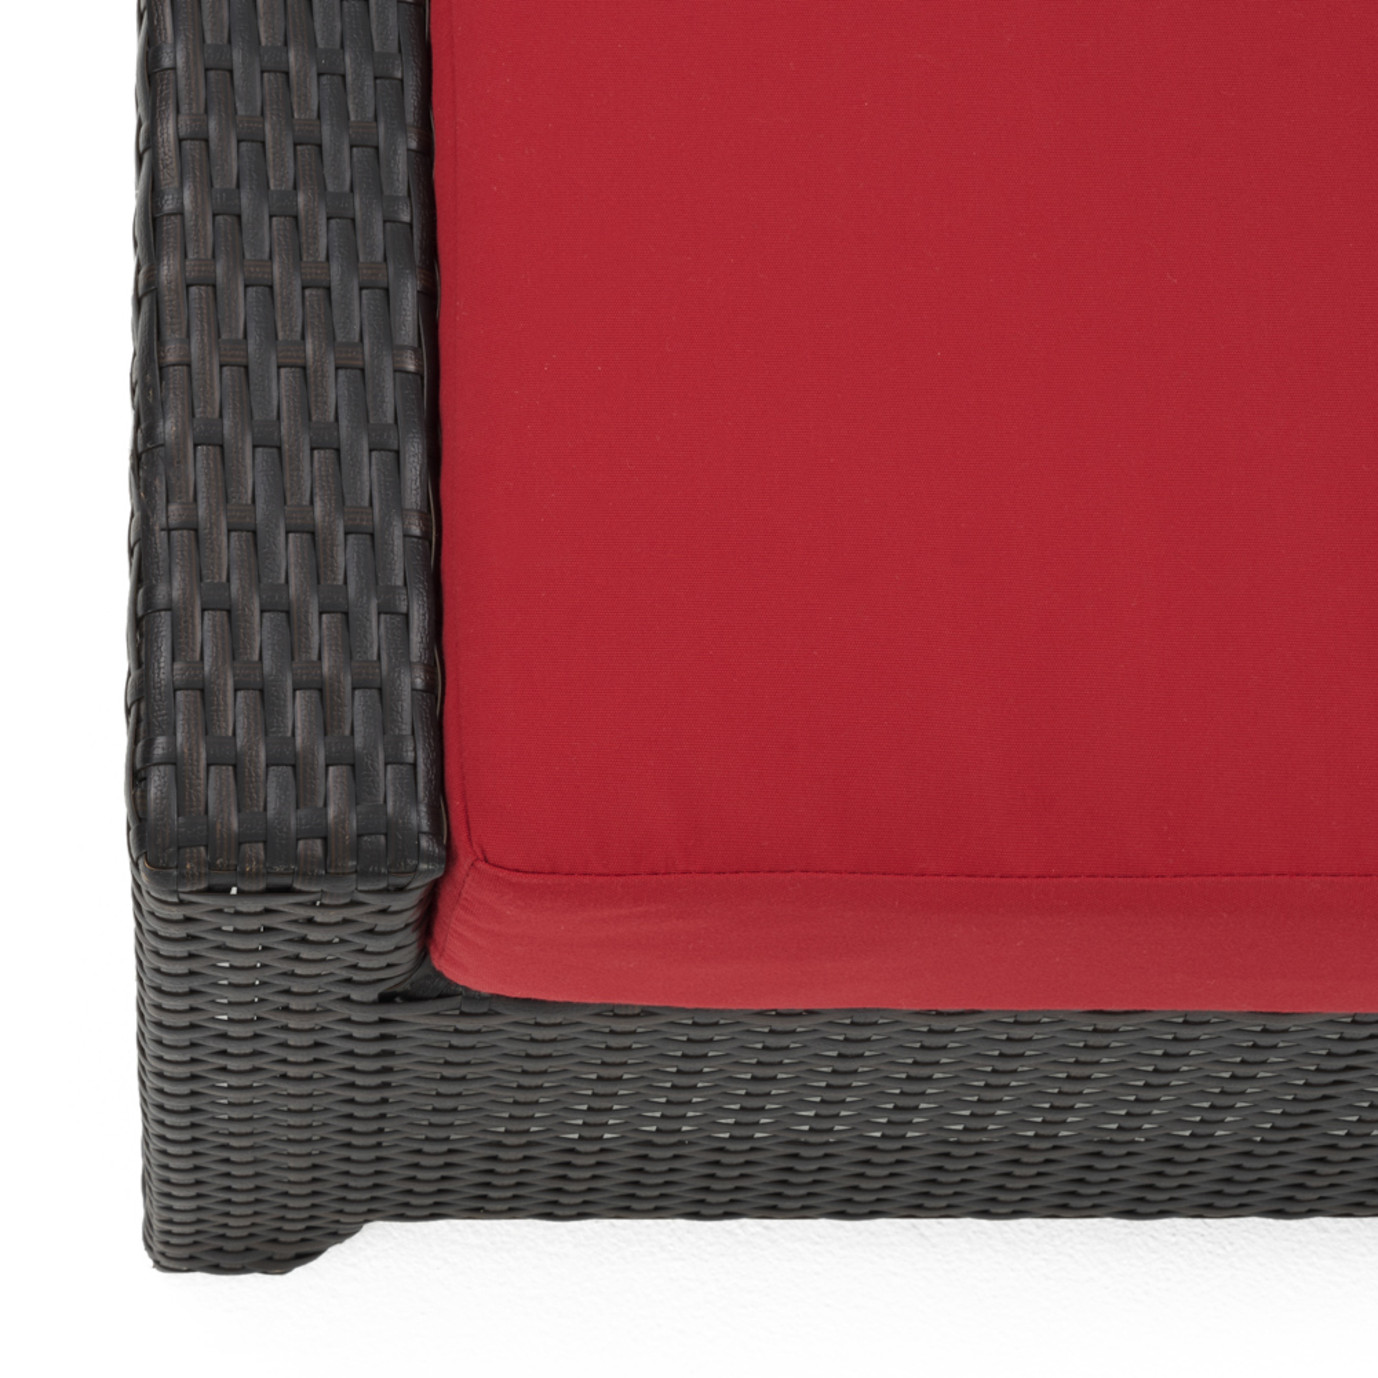 Deco™ 6 Piece Love & Club Seating Set - Sunset Red